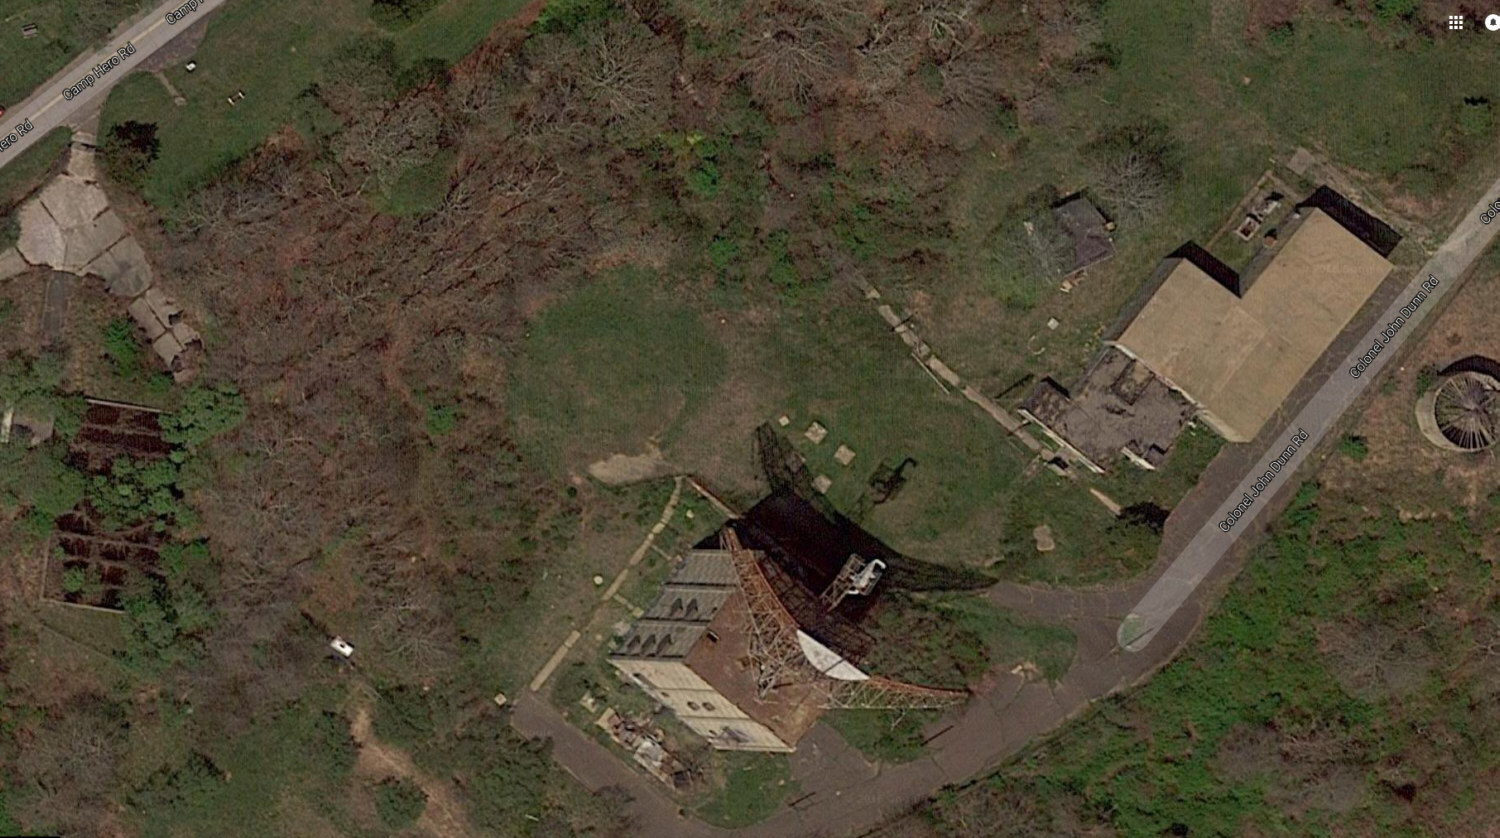 Google Earth View of Montauk